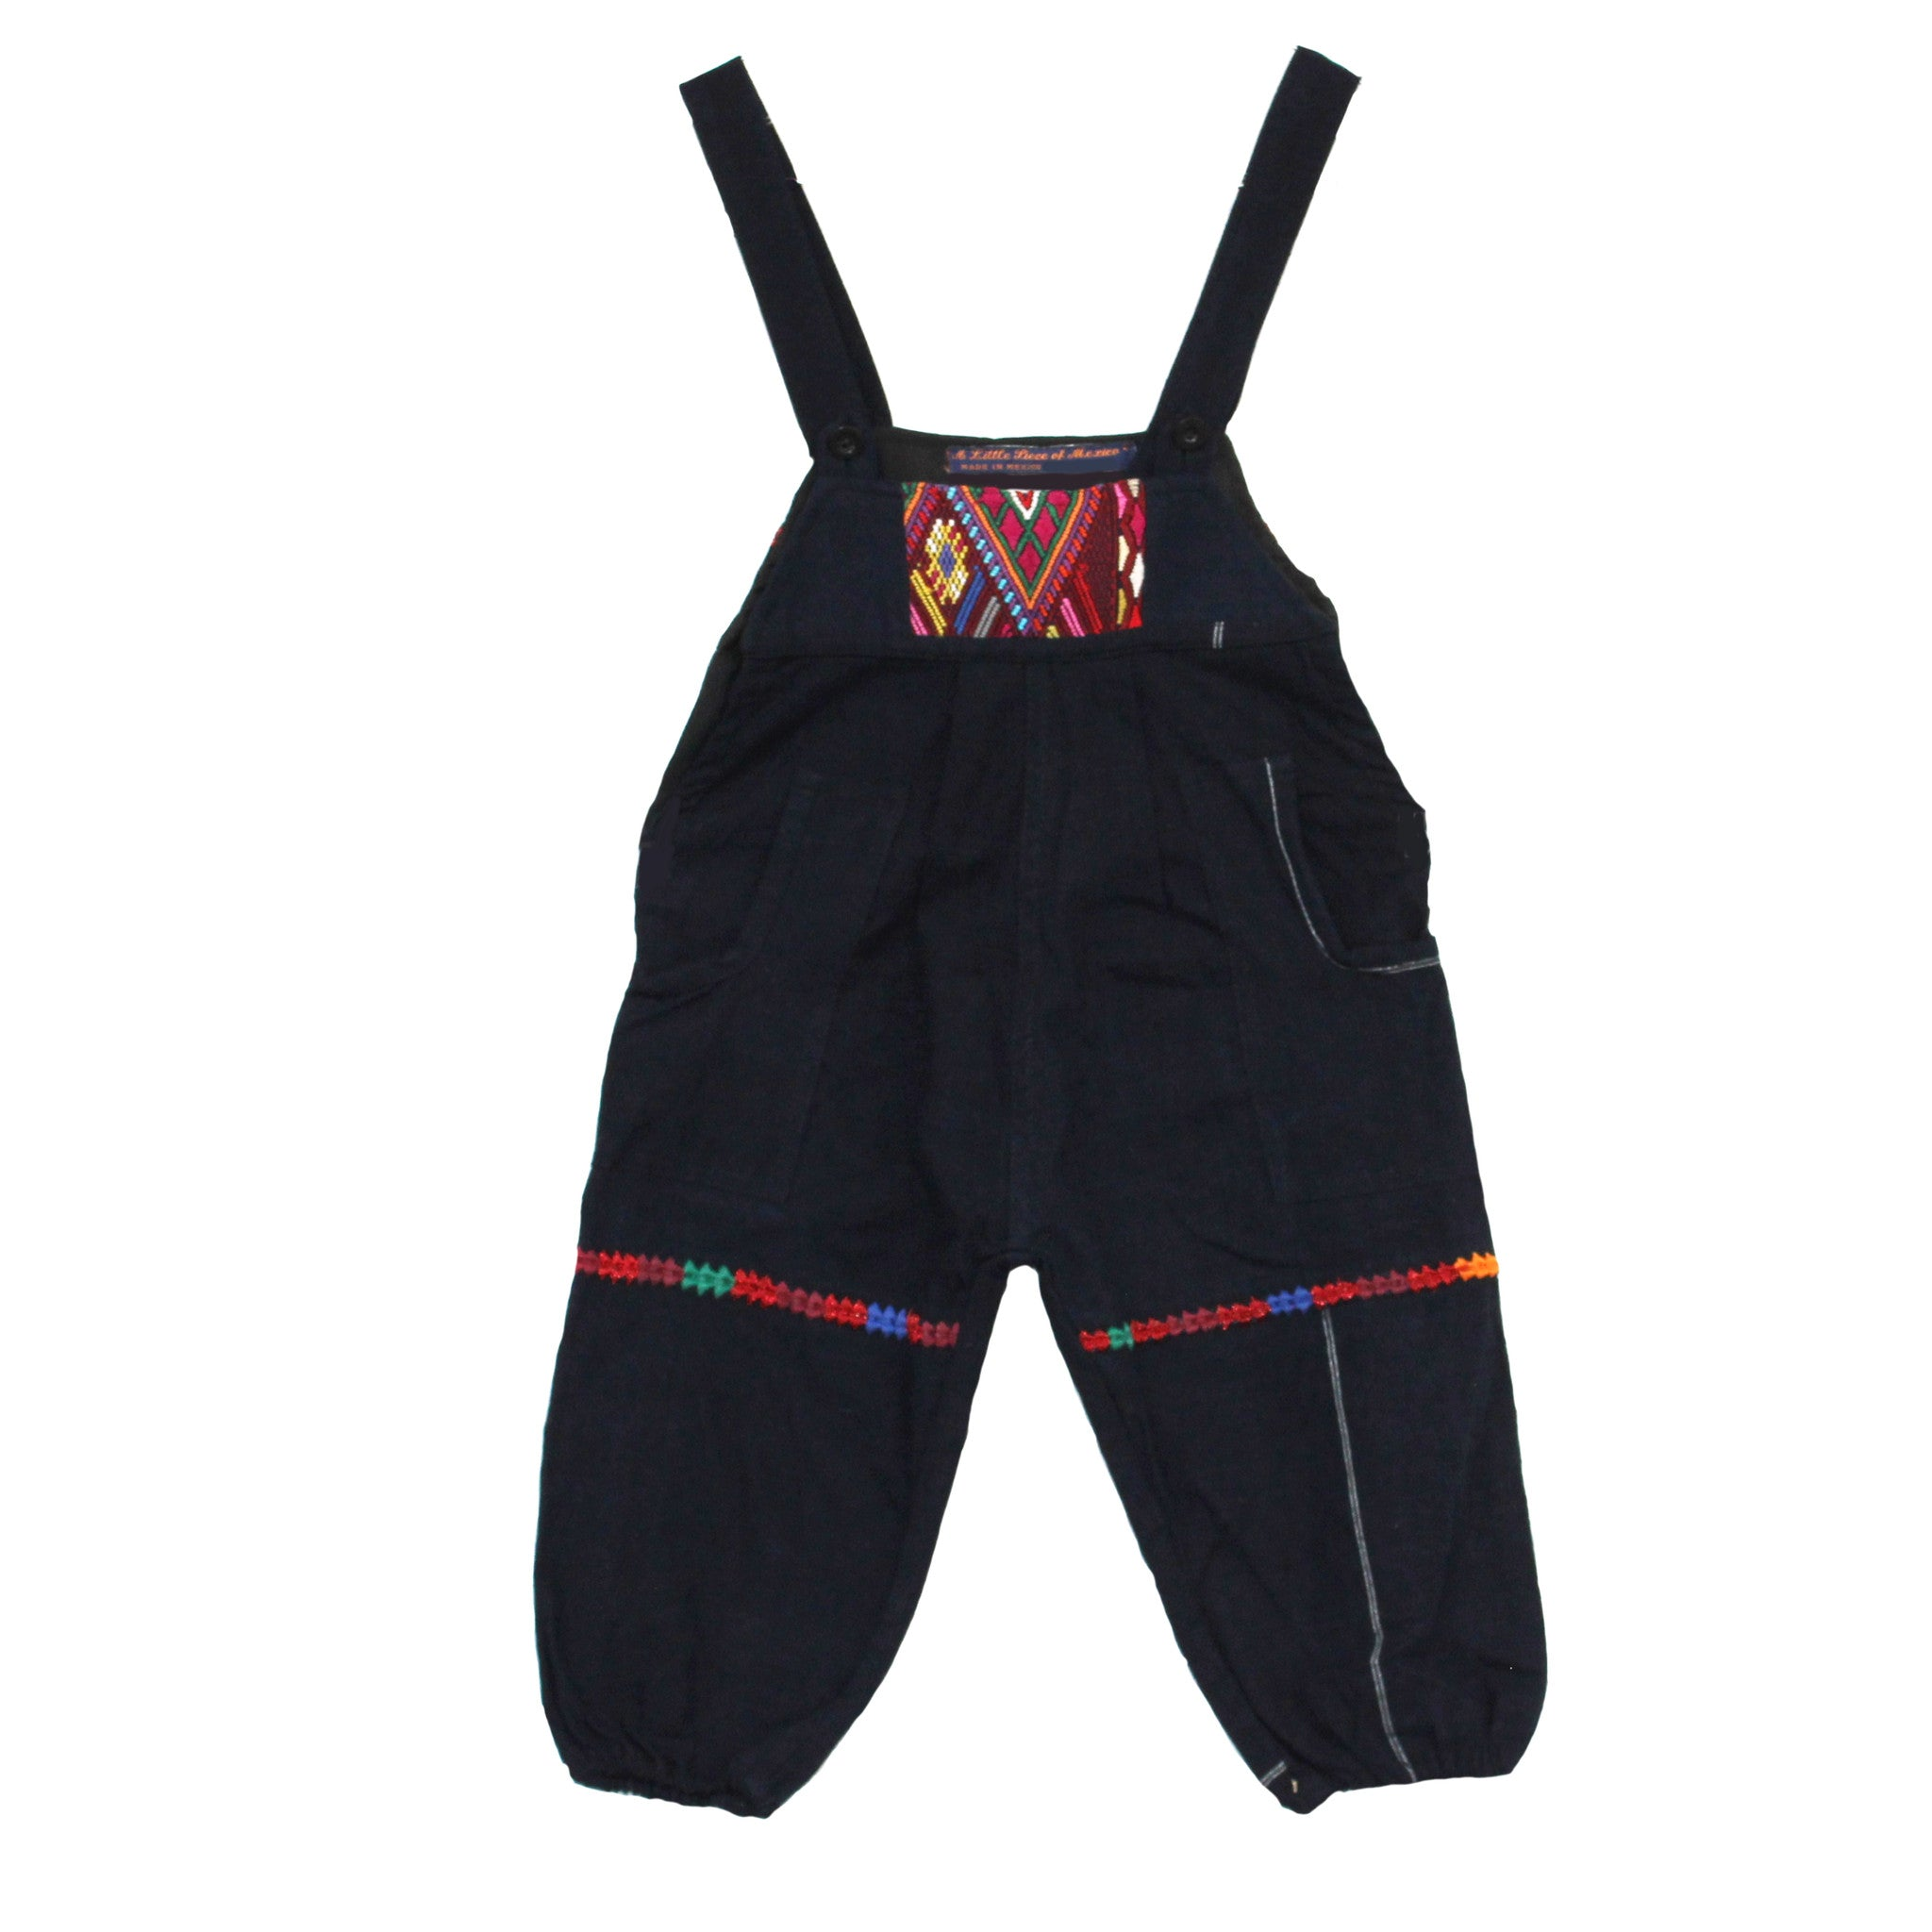 Boys overalls pure cotton - Backstrap Mayan loom fabric